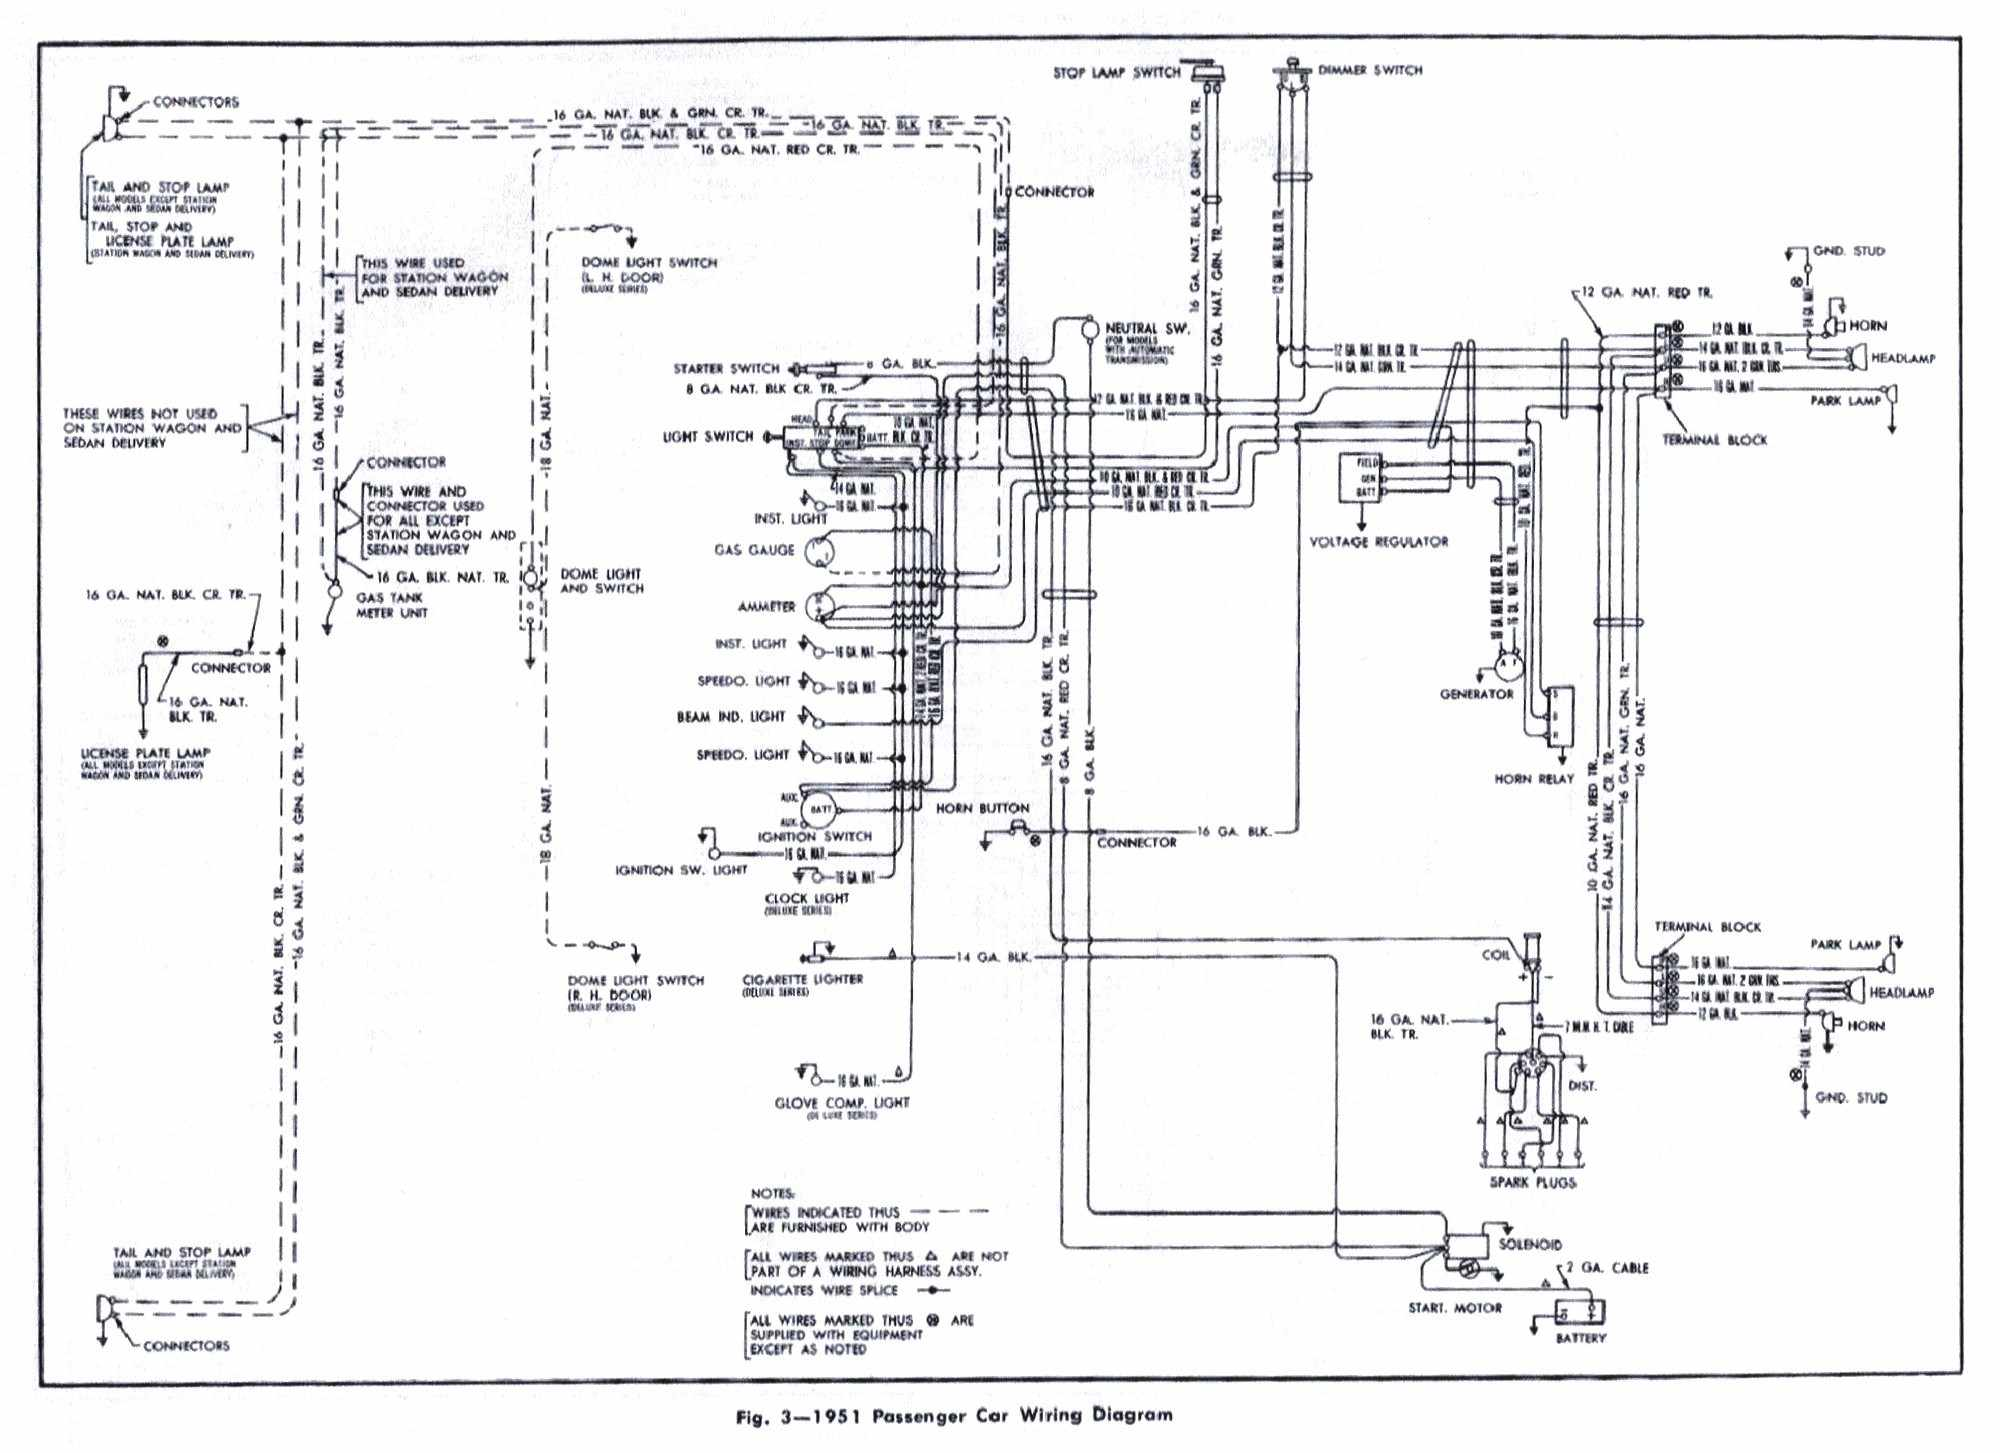 Chevrolet car manuals wiring diagrams pdf fault codes download pooptronica